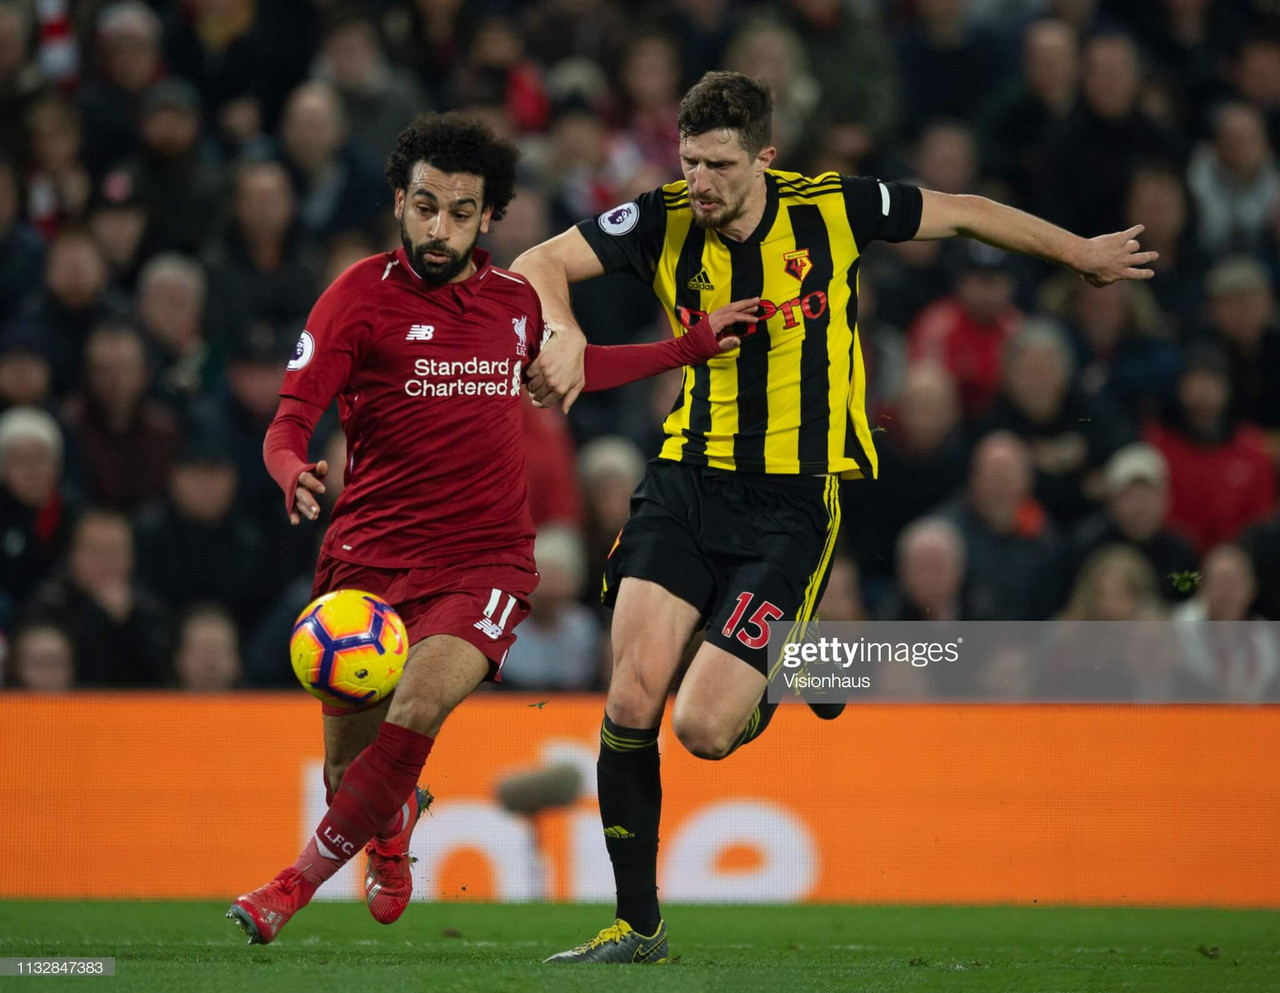 Liverpool vs Watford Preview: Top against bottom at Anfield